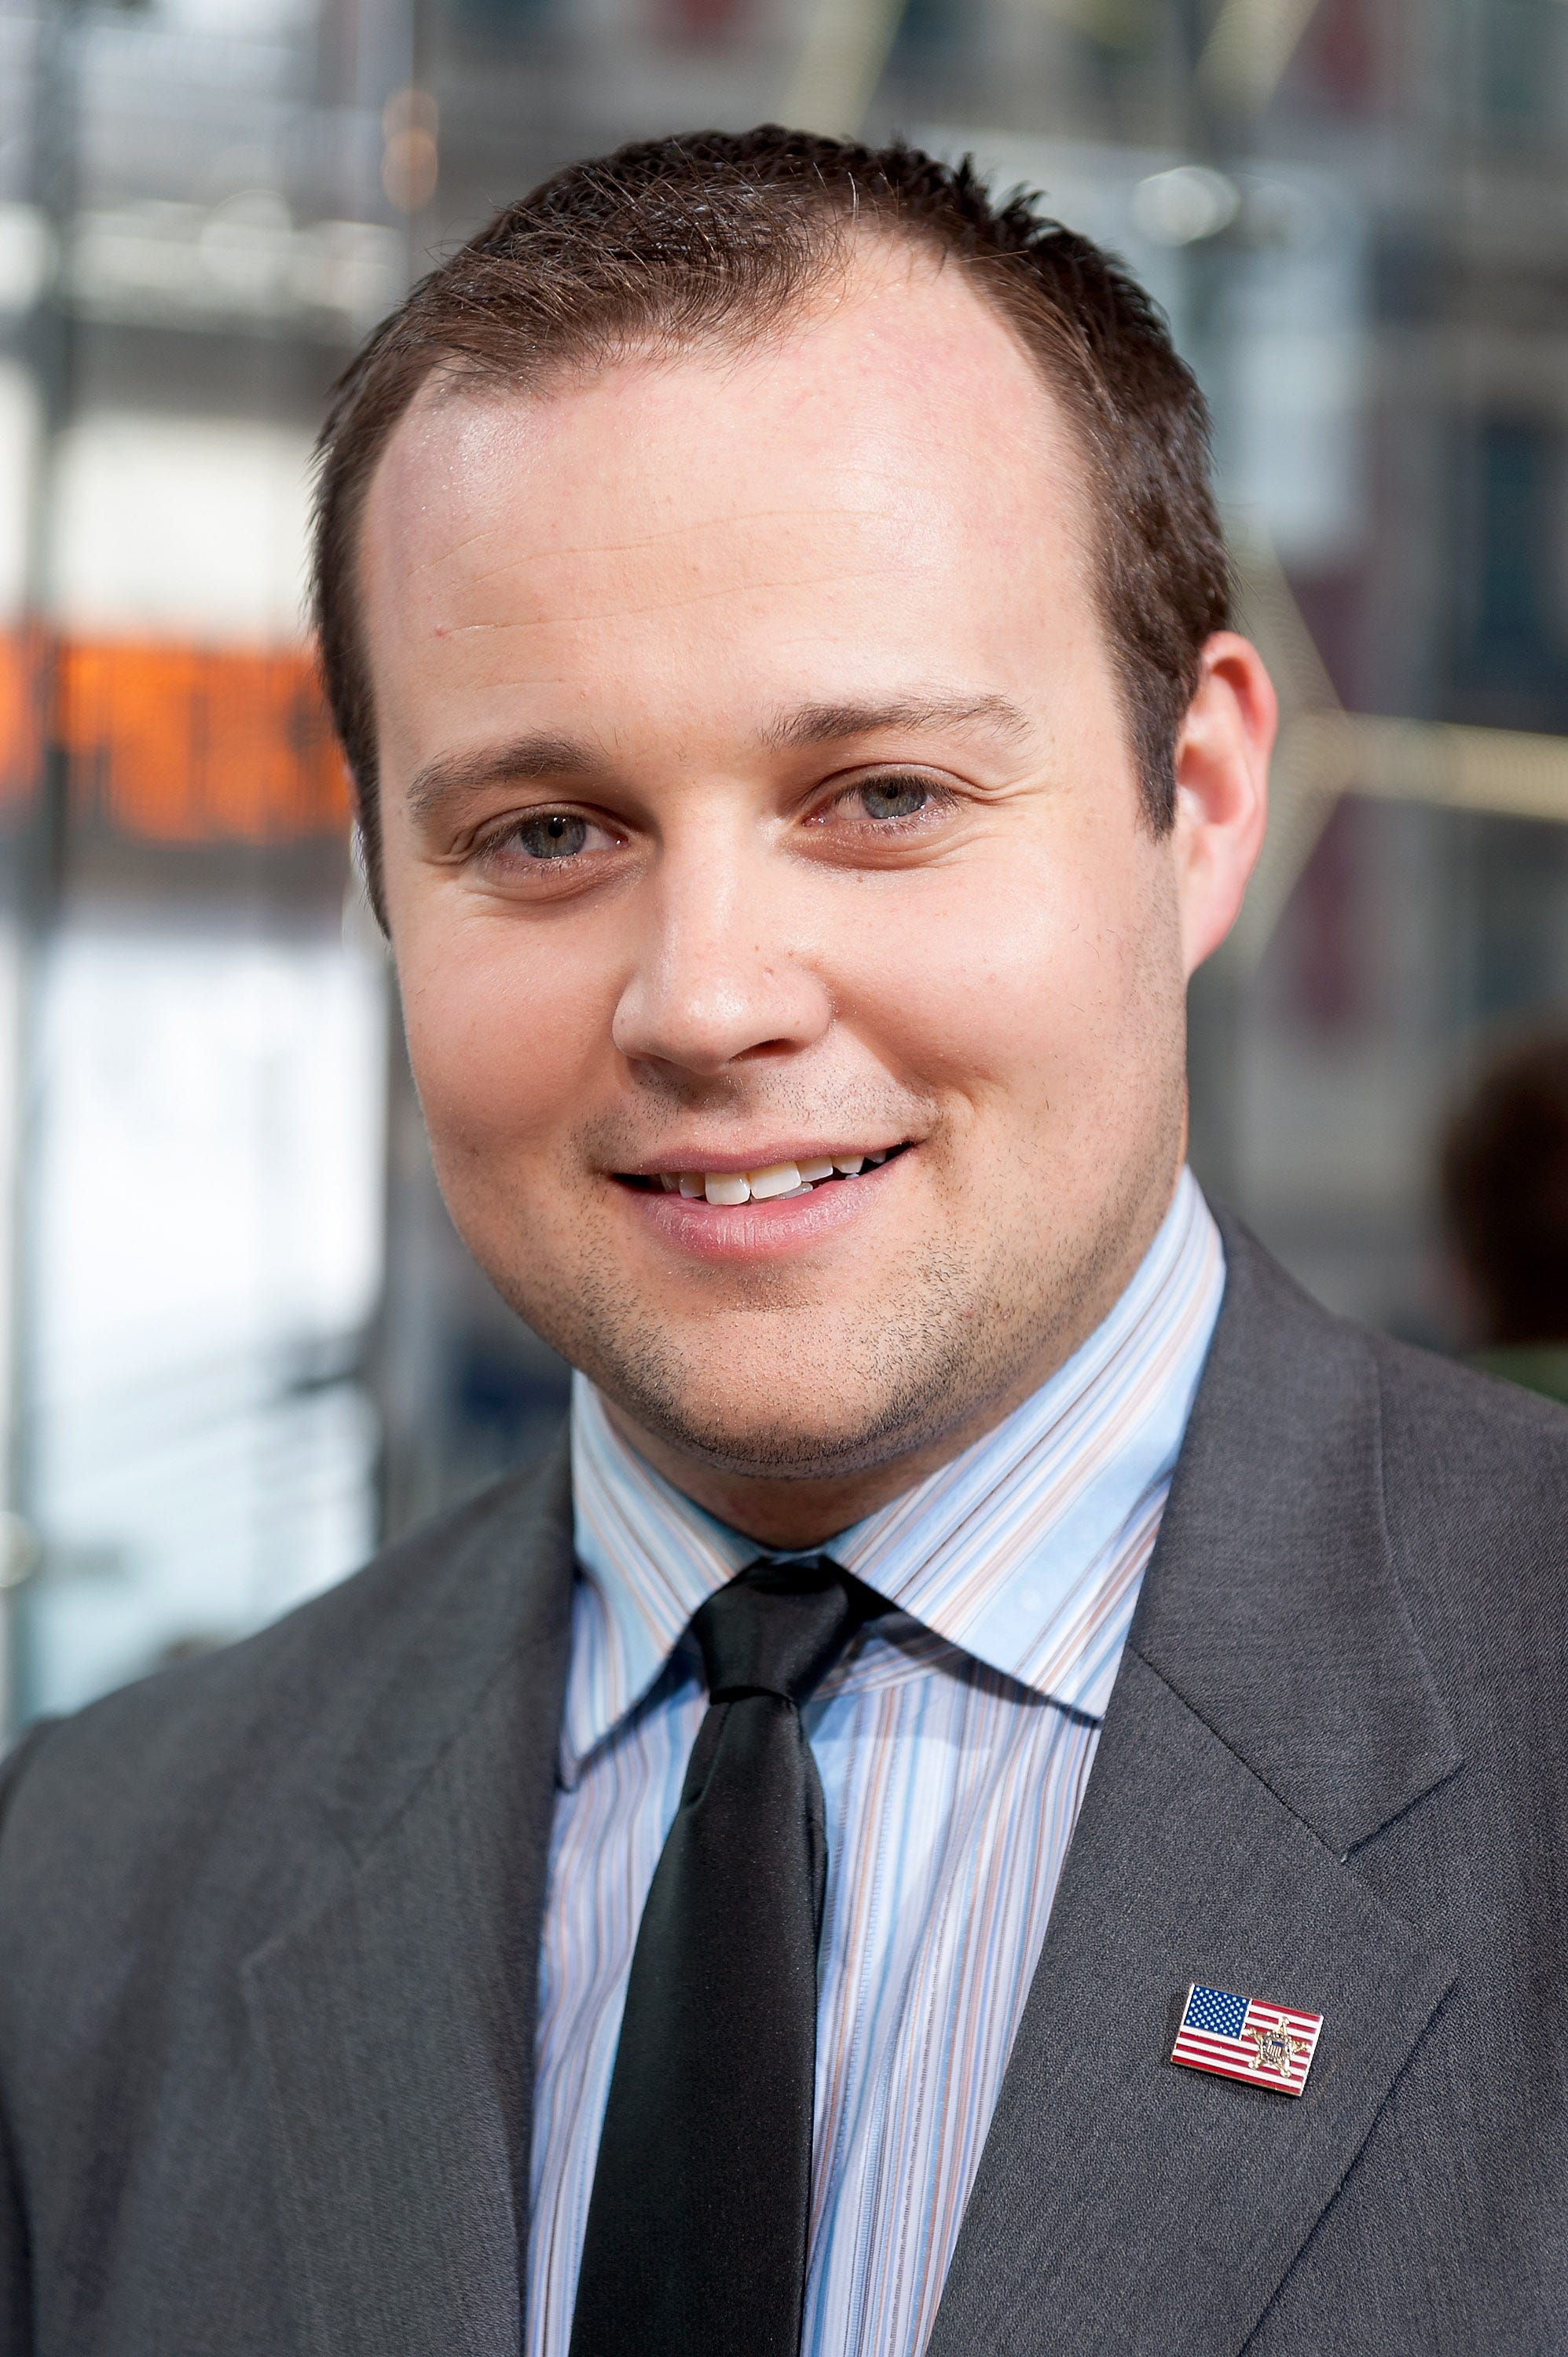 Watch Josh Duggar Is Being Sued By A Porn Star For Assault After Their Seedy Sexcapades video